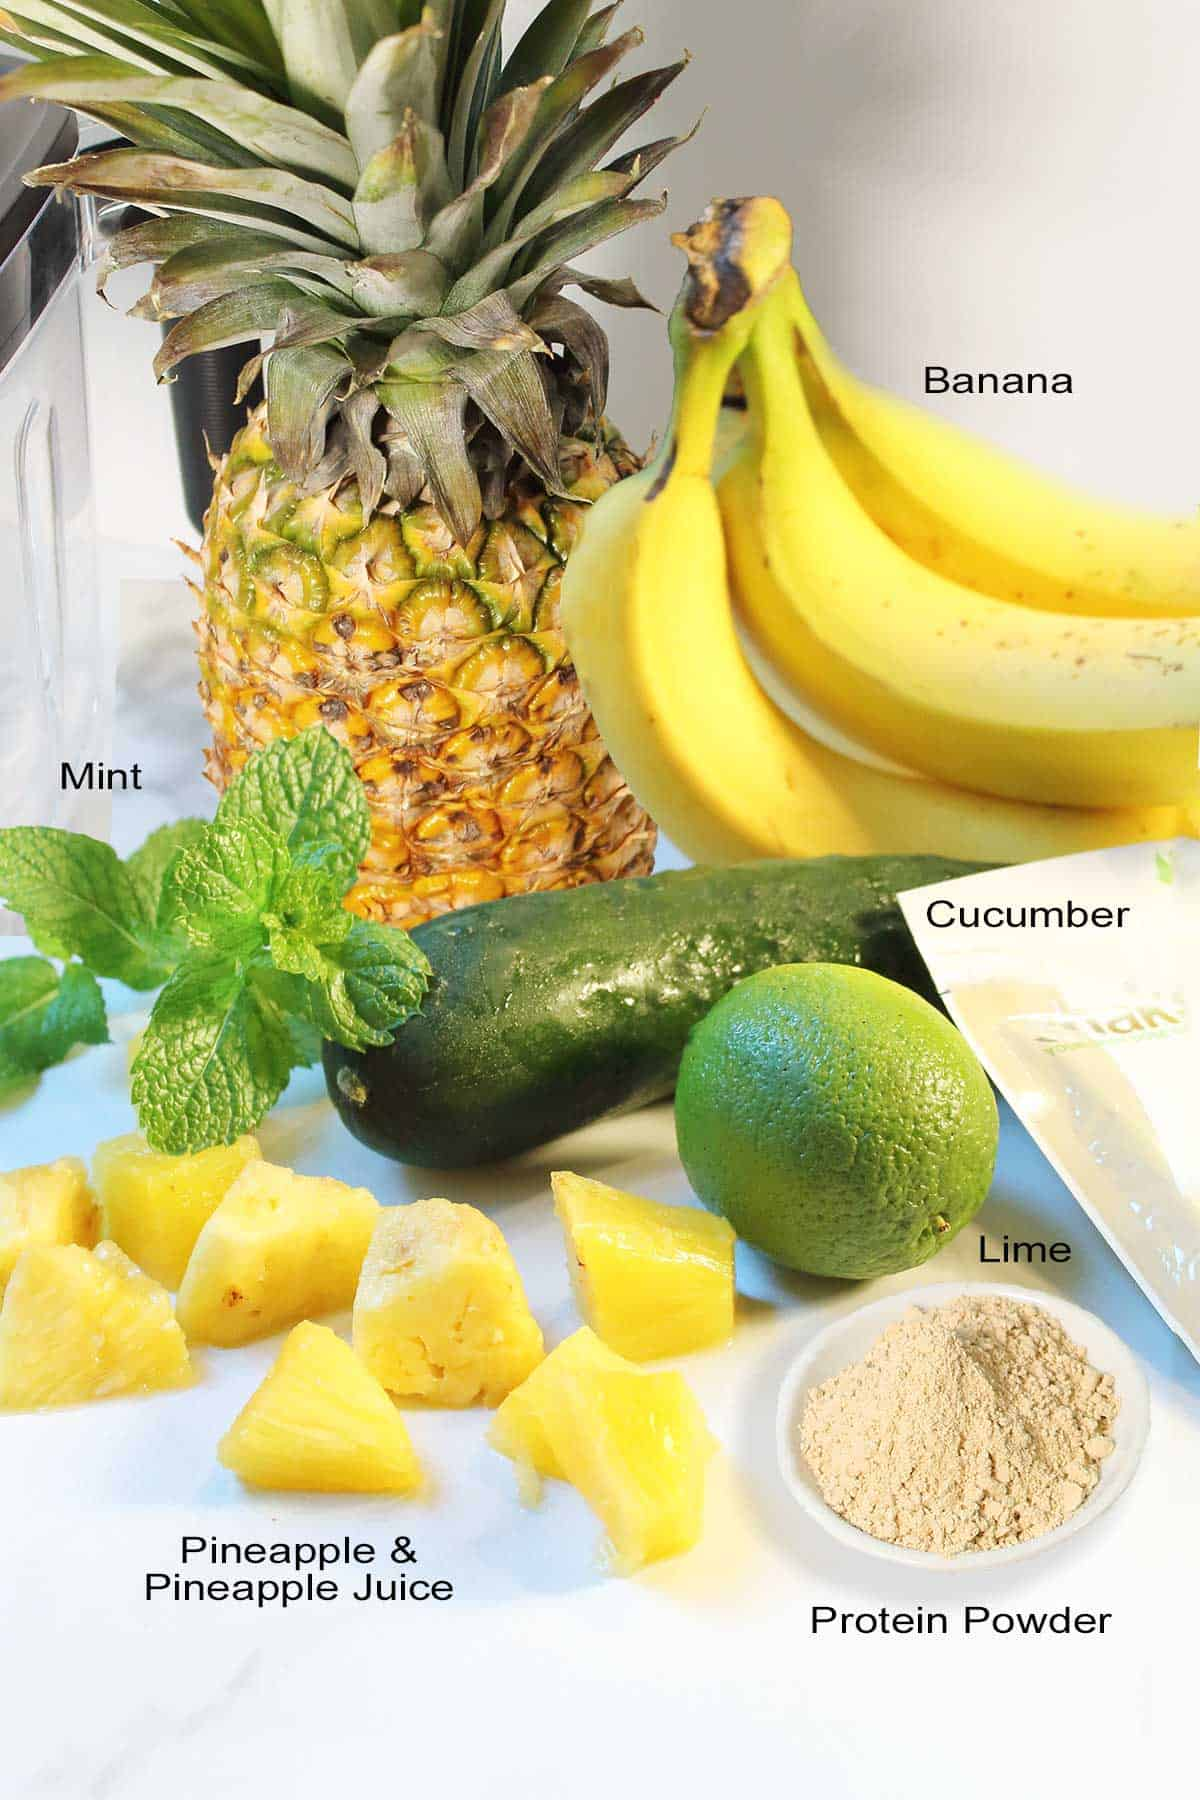 Ingredients for Banana Pineapple Smoothie.